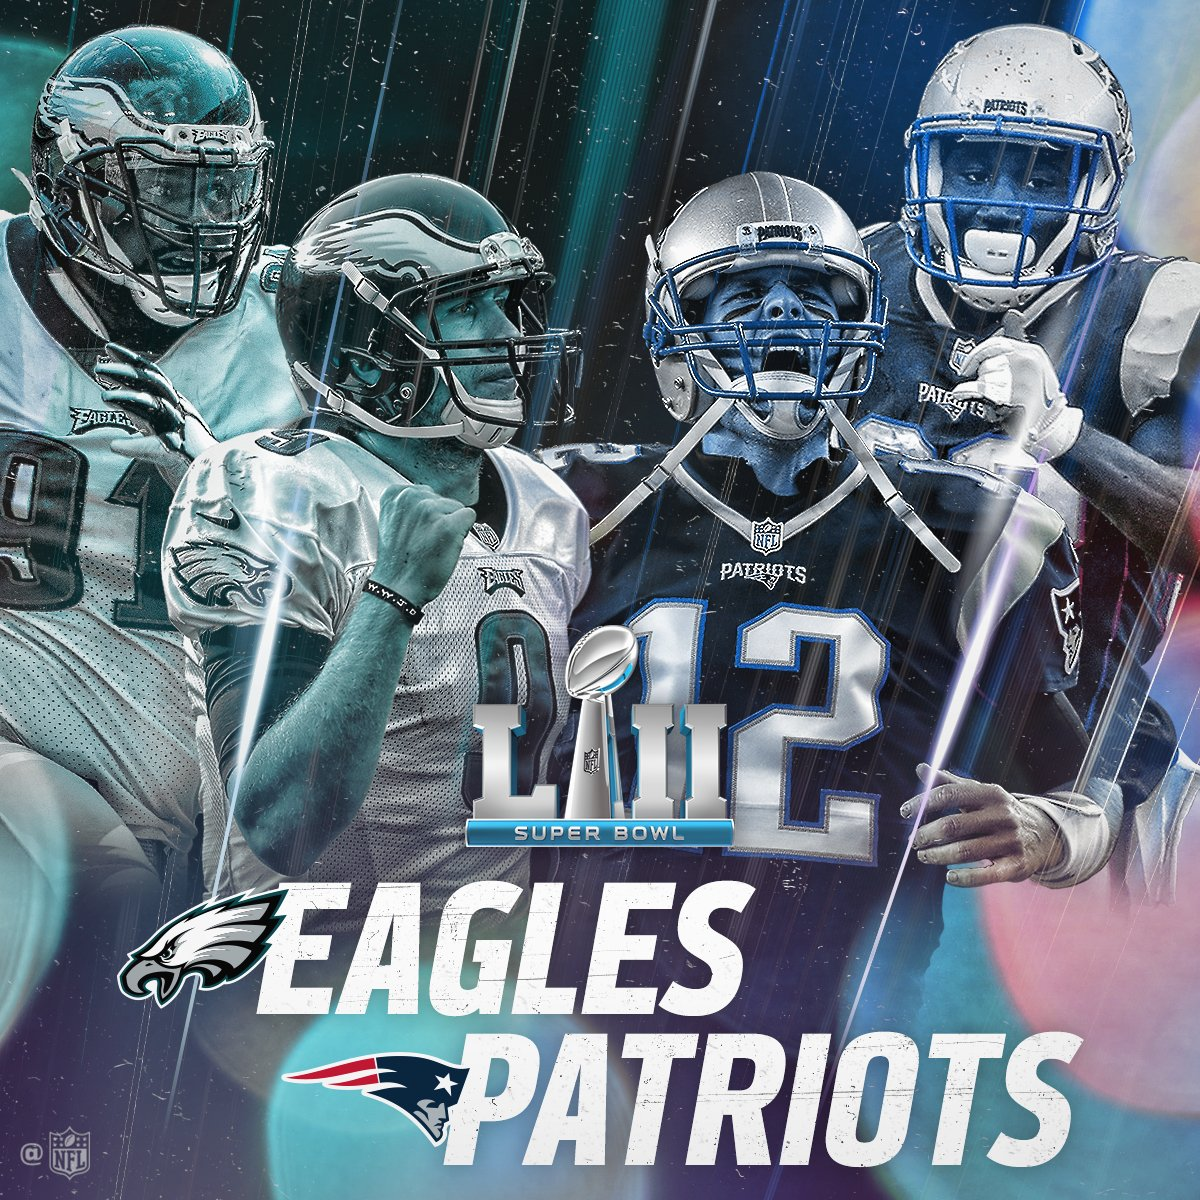 RT @NFL: The @Eagles. The @Patriots.  See you in Minneapolis! #GoPats #FlyEaglesFly #SBLII https://t.co/CASwWvUpXC